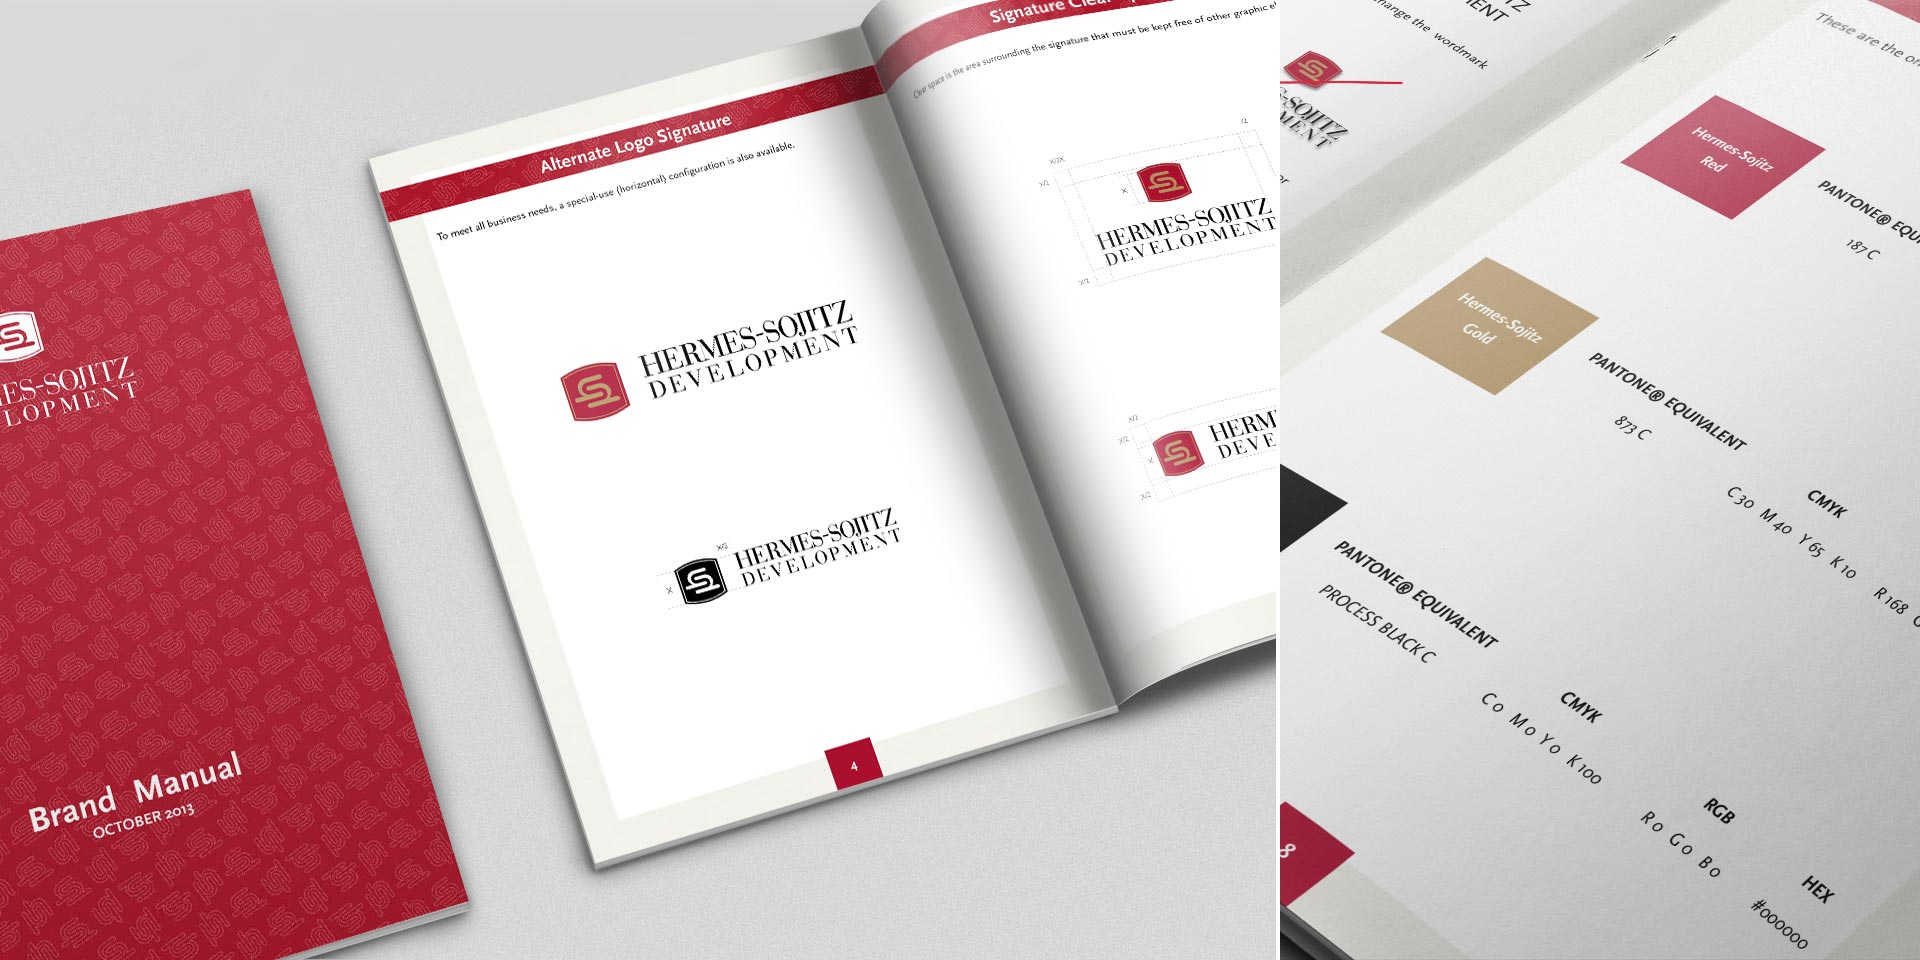 hs-corporate-identity-manual